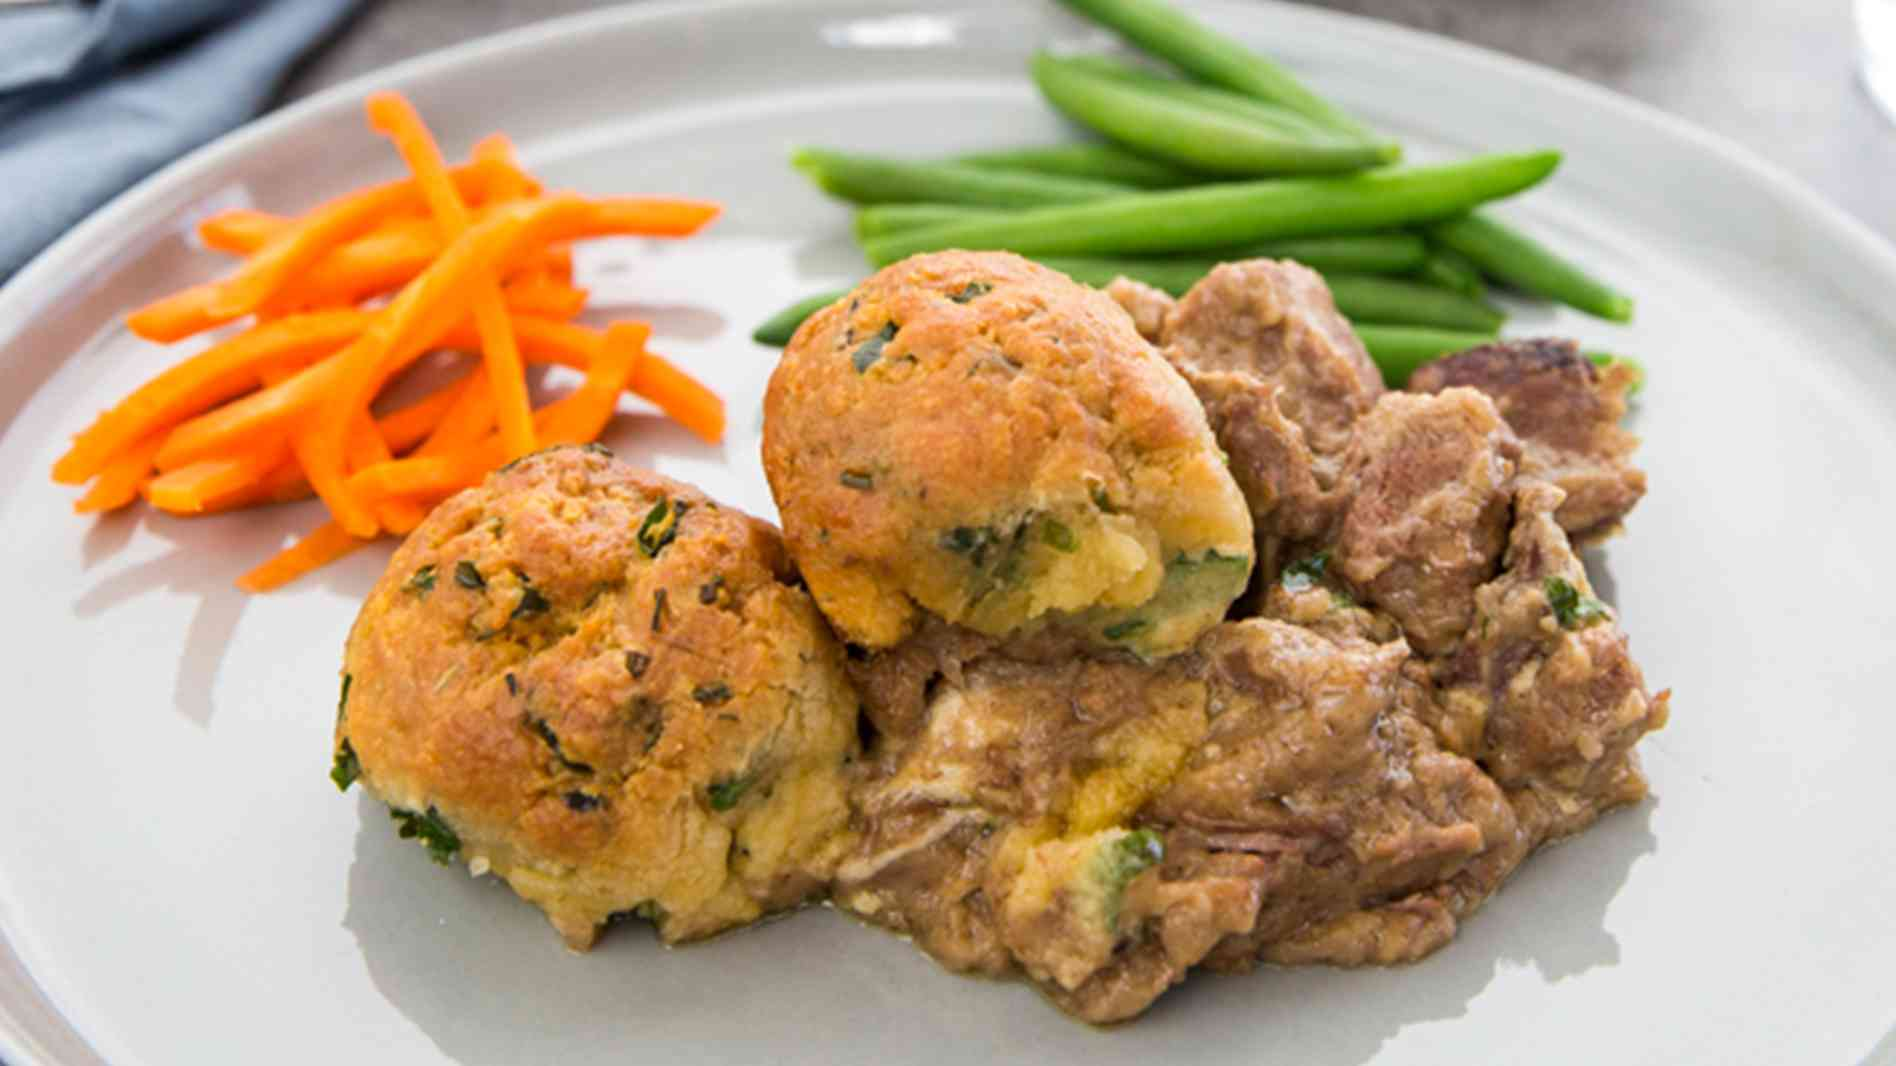 Steak and Kidney Casserole with Sage Dumplings